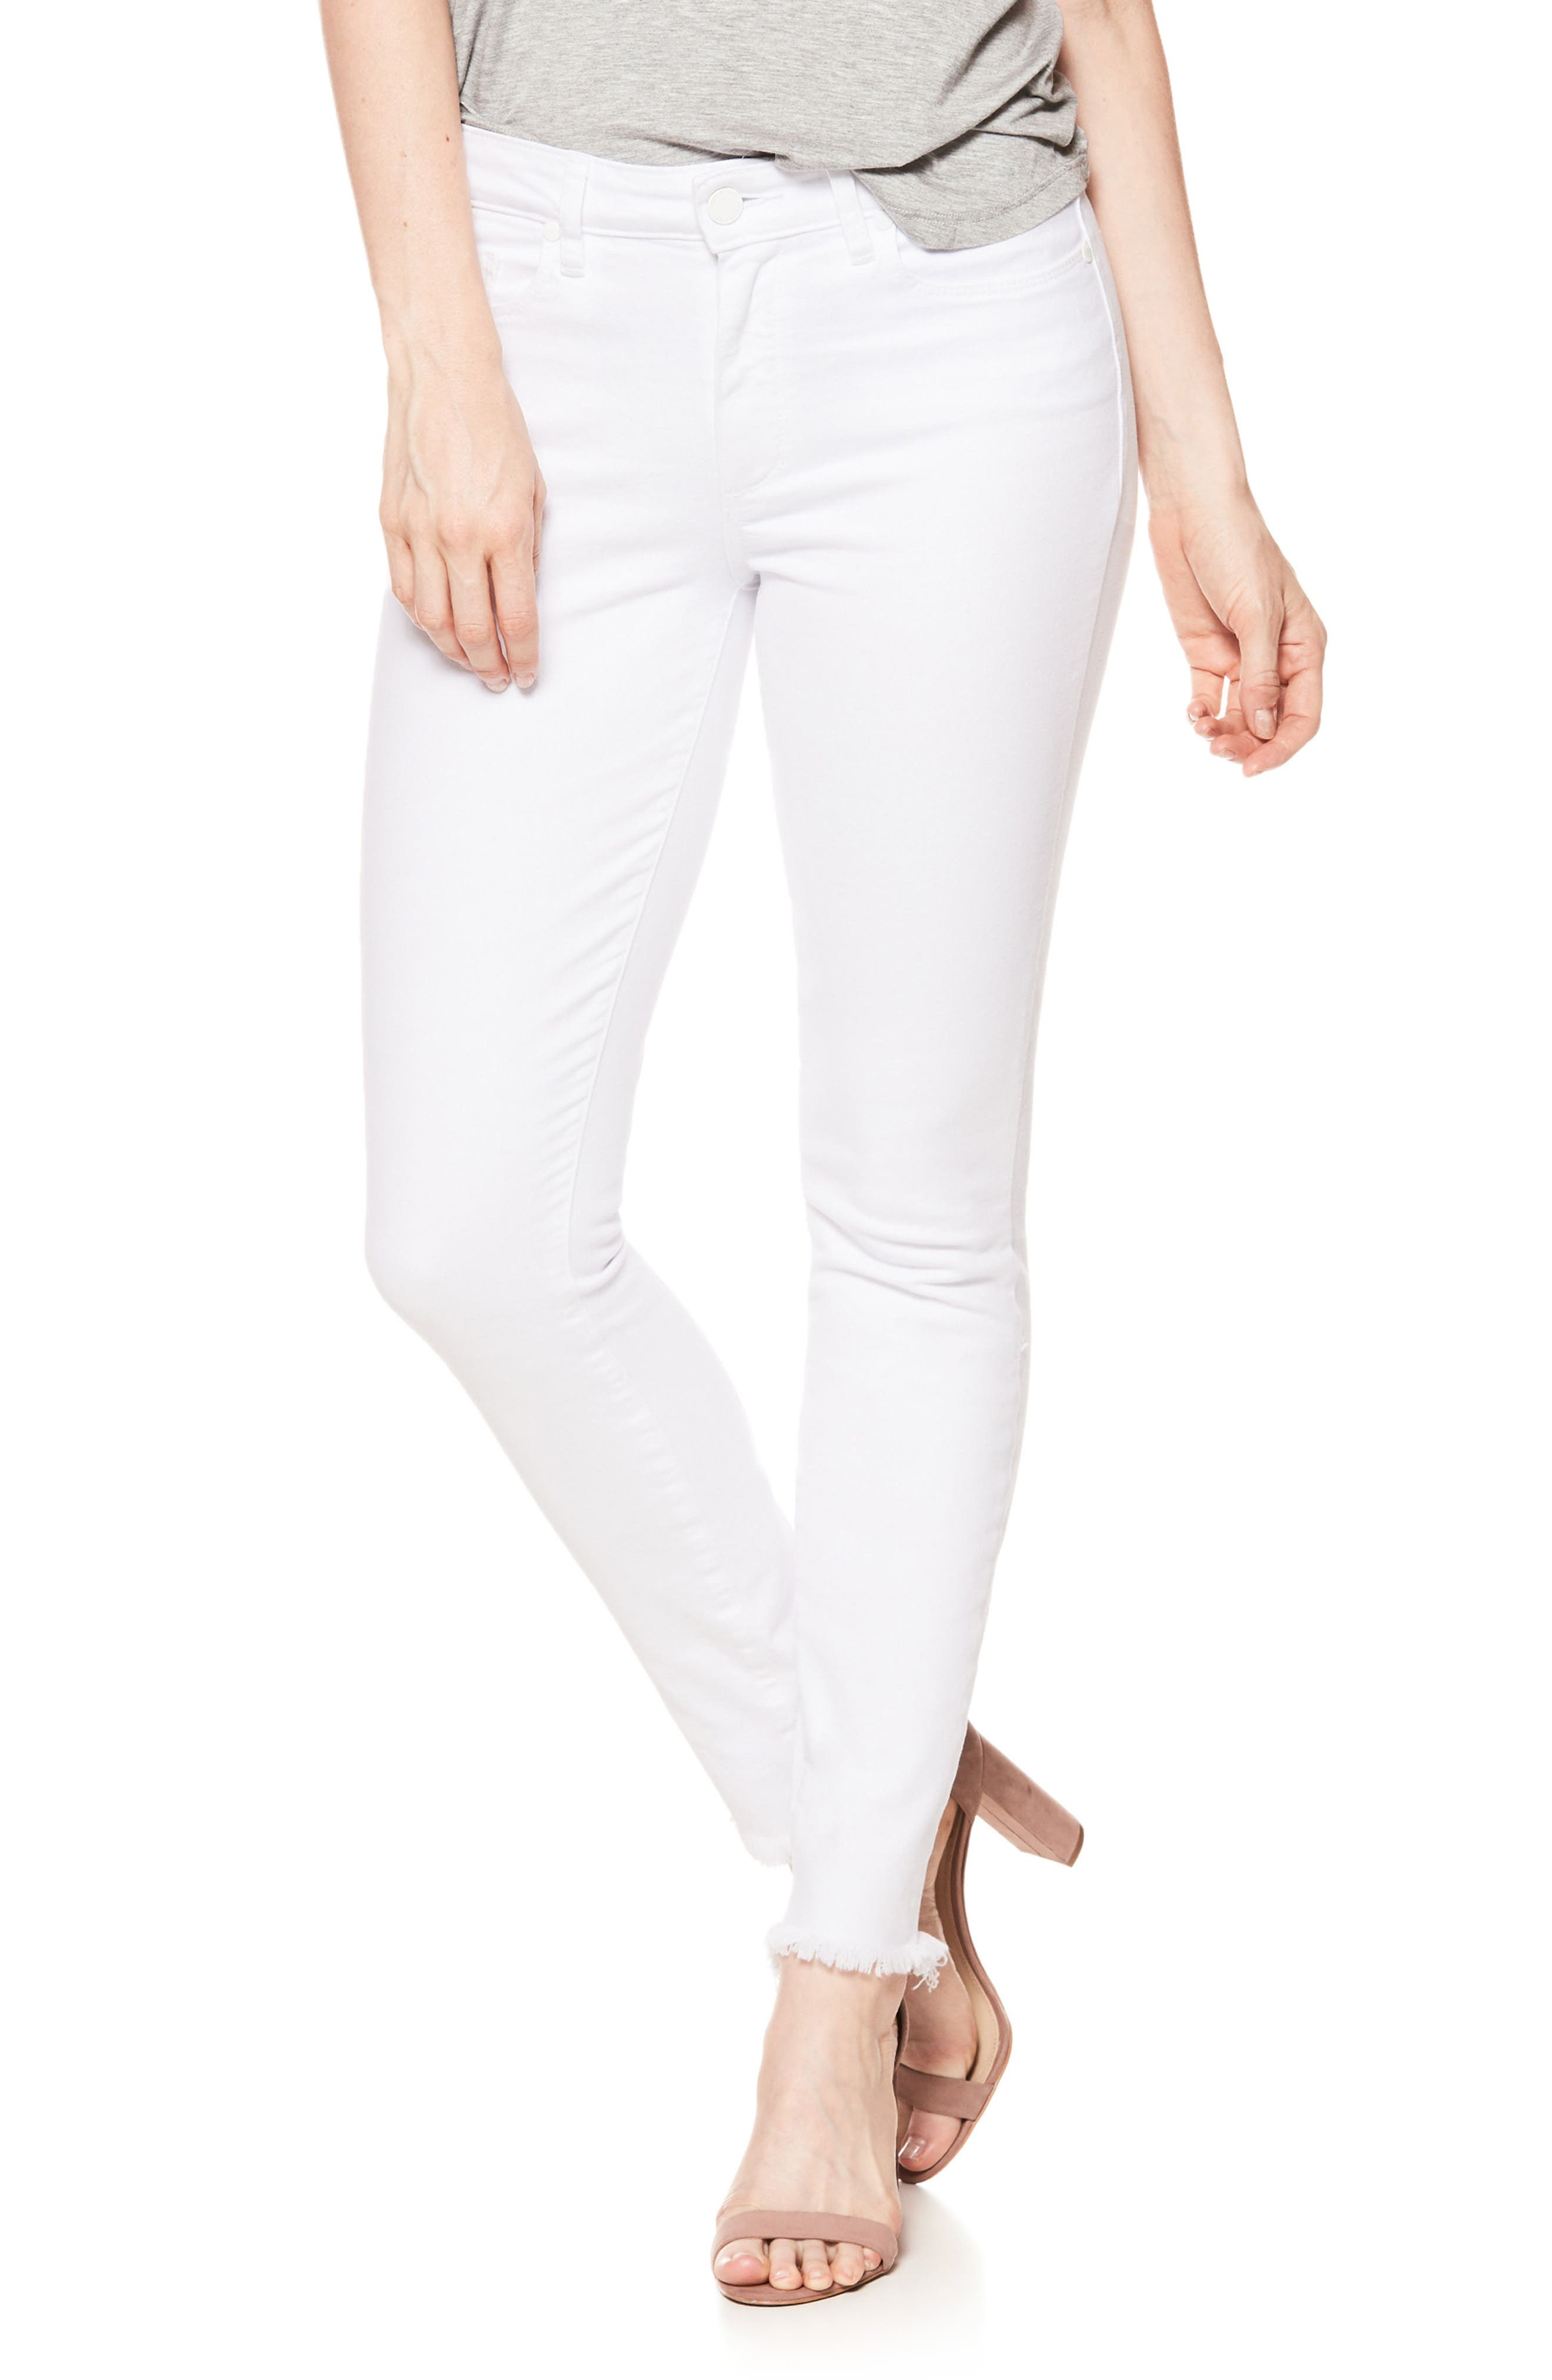 Hoxton High Waist Ankle Skinny Jeans,                         Main,                         color, Crisp White